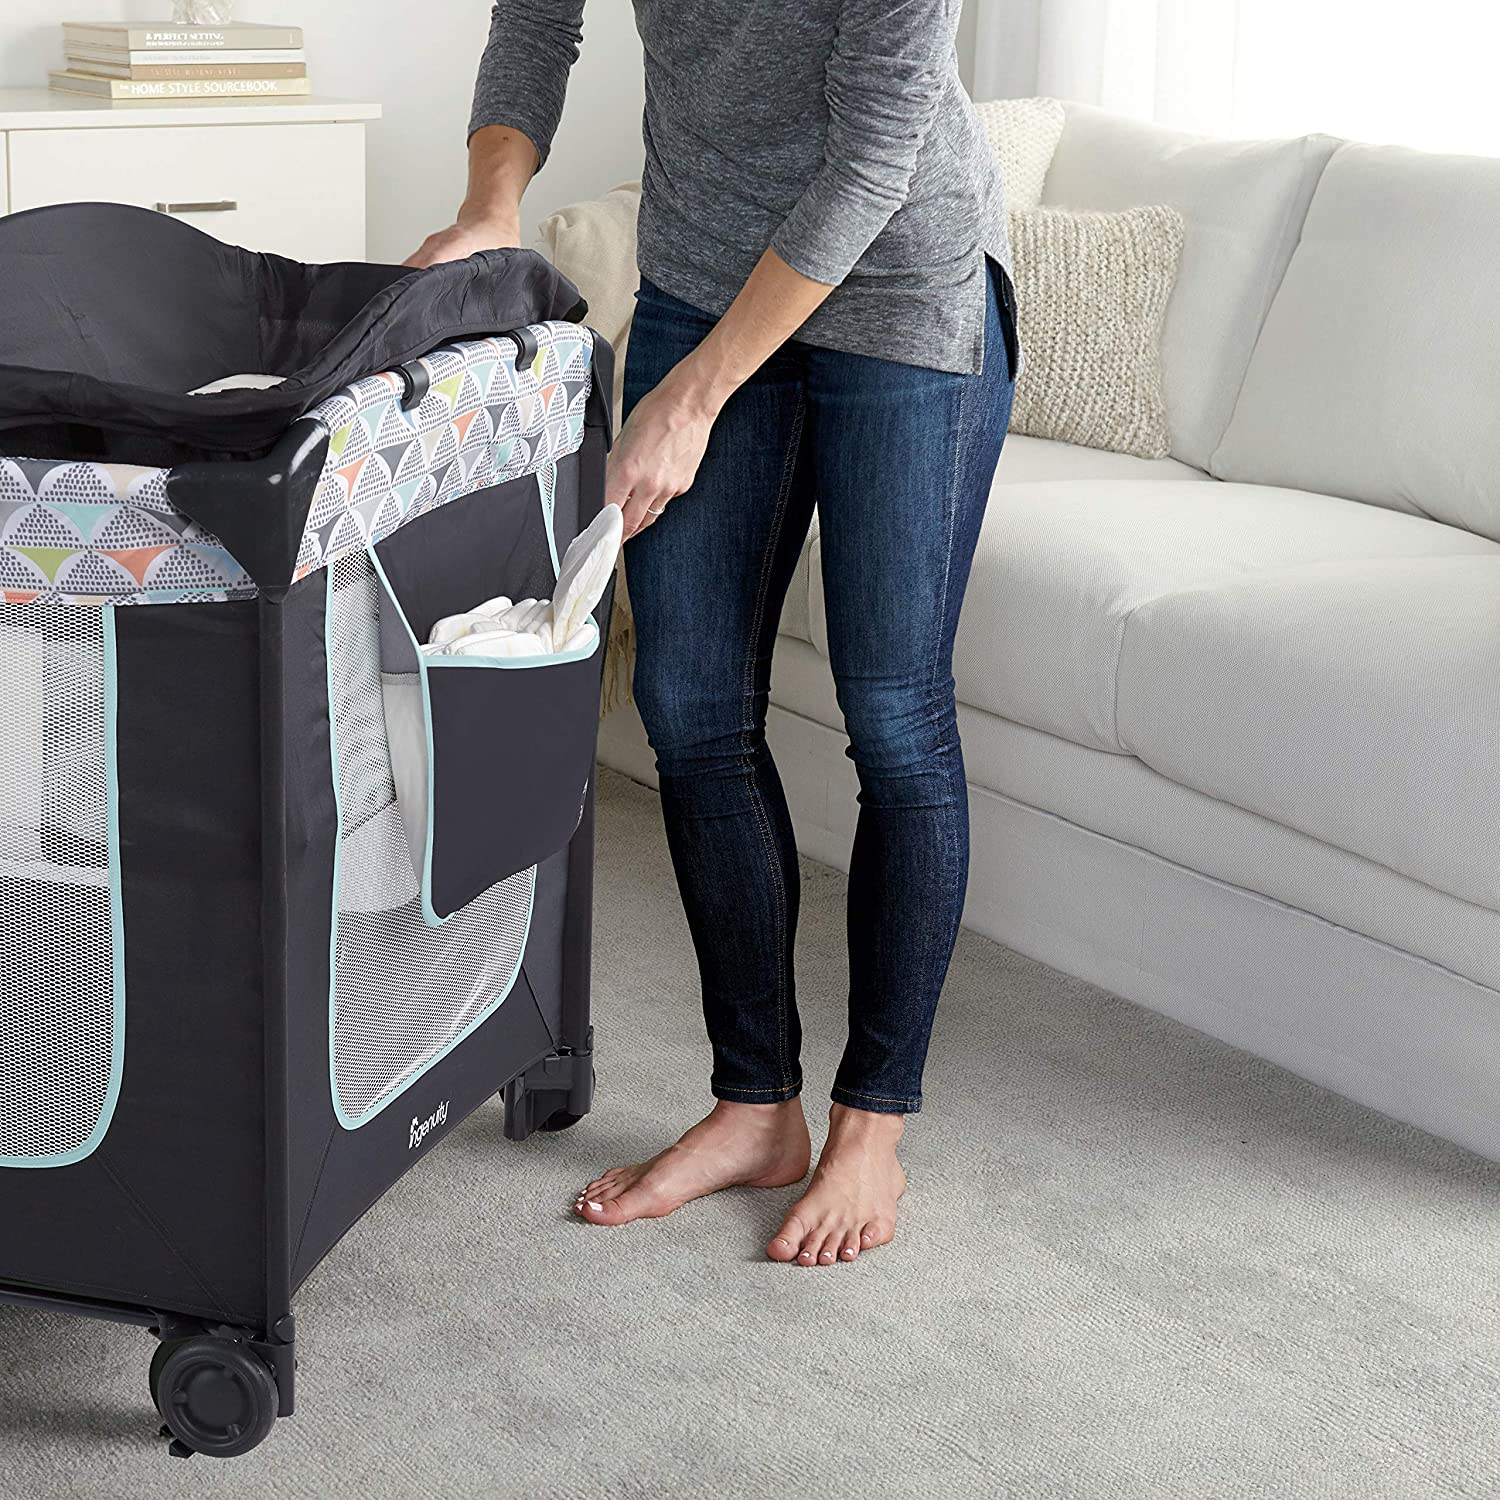 Bryant Ingenuity Smart and Simple Portable Packable Playard with Changing Table